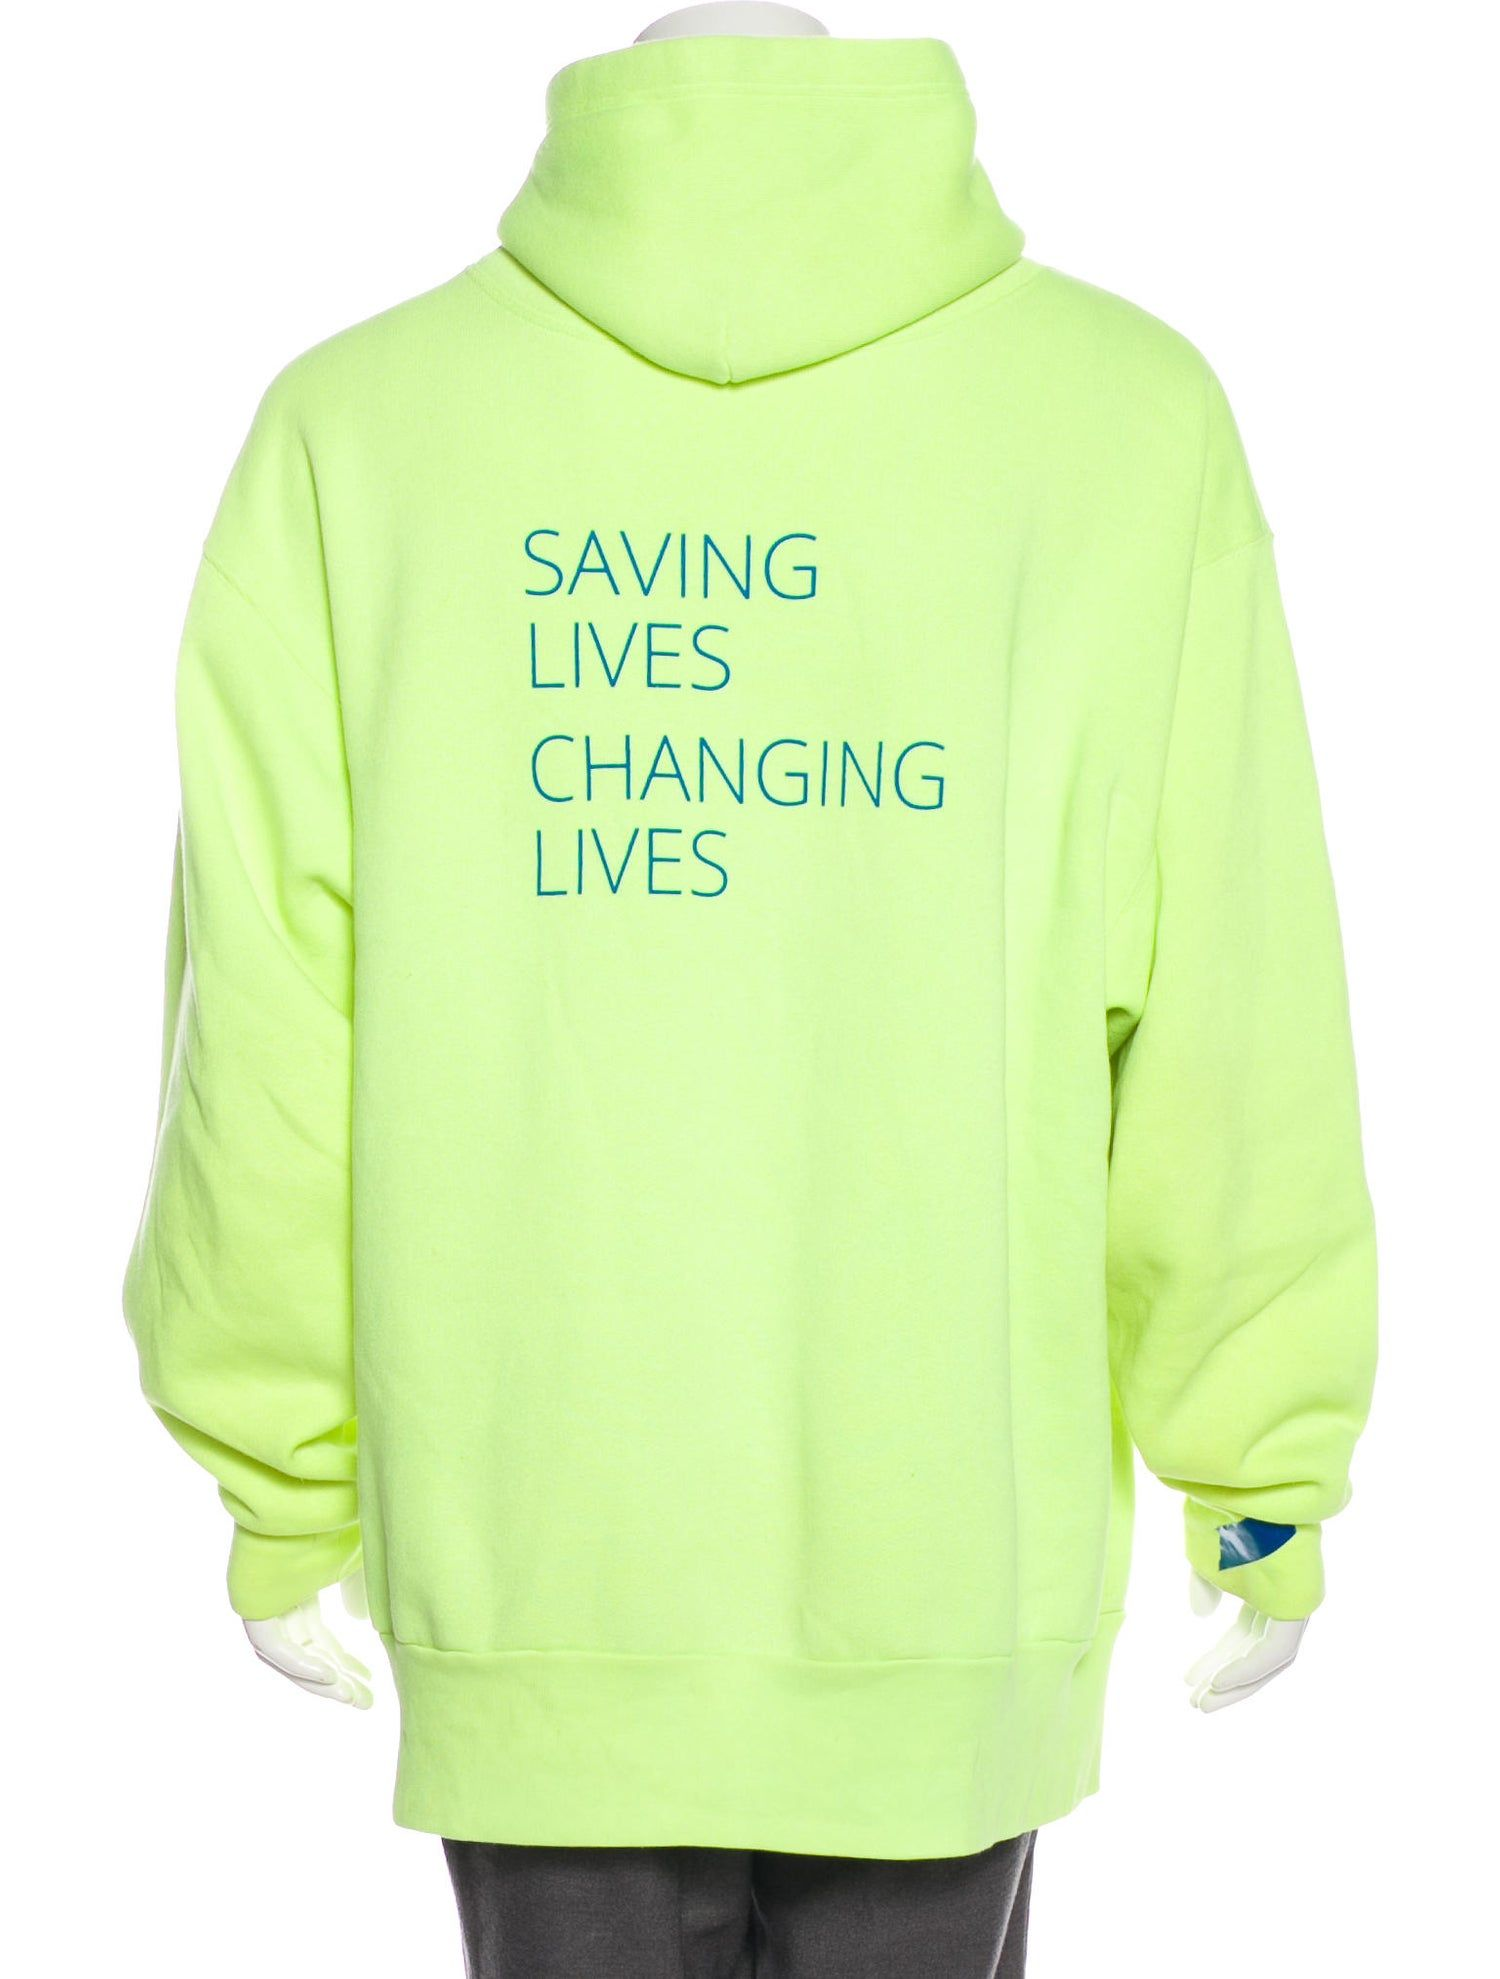 2018 Neon World Food Programme Hoodie Hoodies Neon World Food Programme